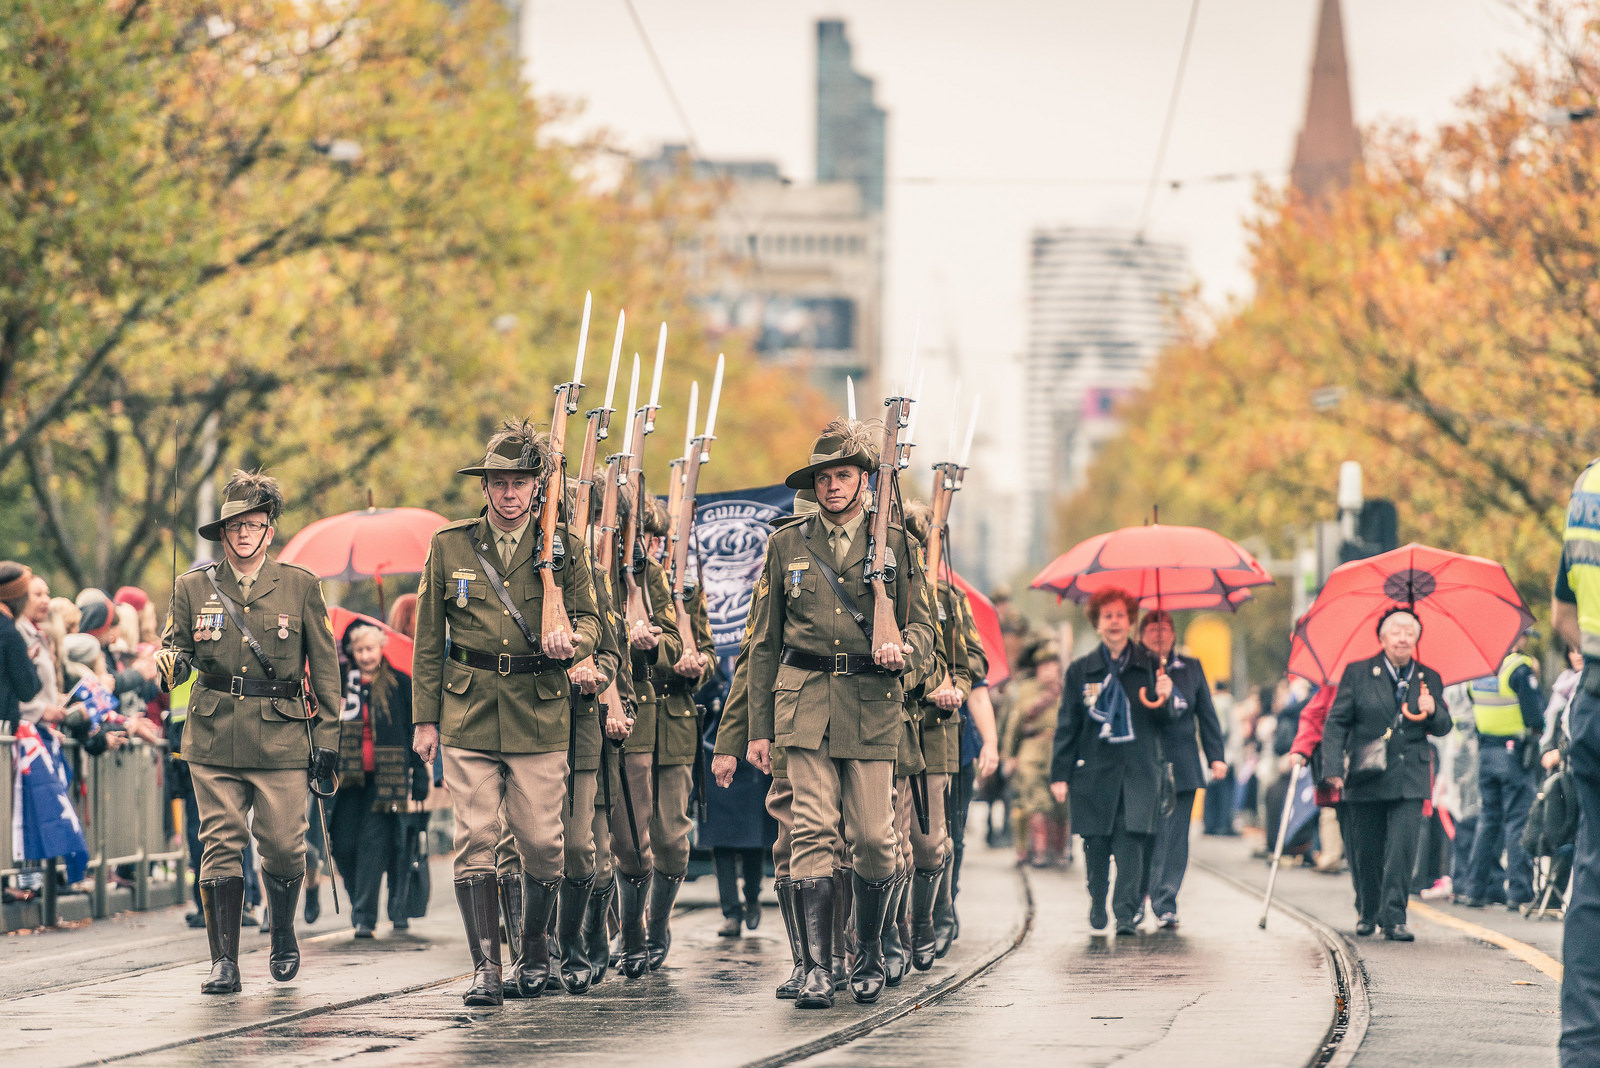 Melbourne ANZAC Day Parade 2015 | © Chris Phutully / Flickr